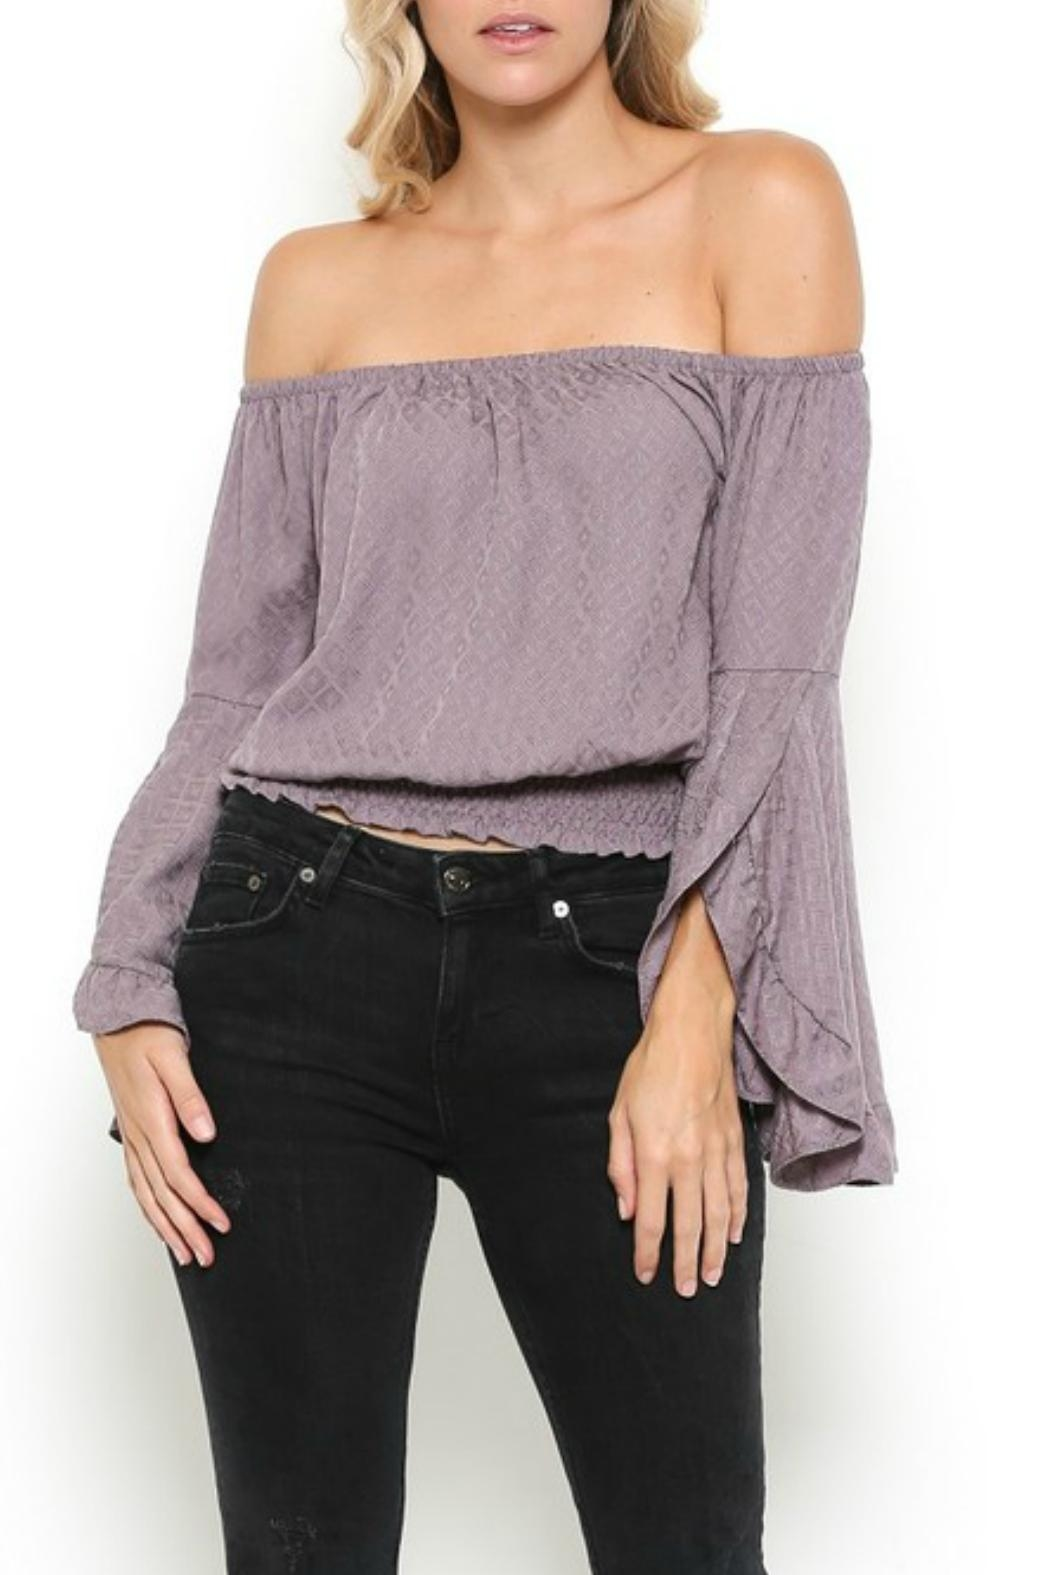 Illa Illa Lavender Off-The-Shoulder Top - Front Full Image